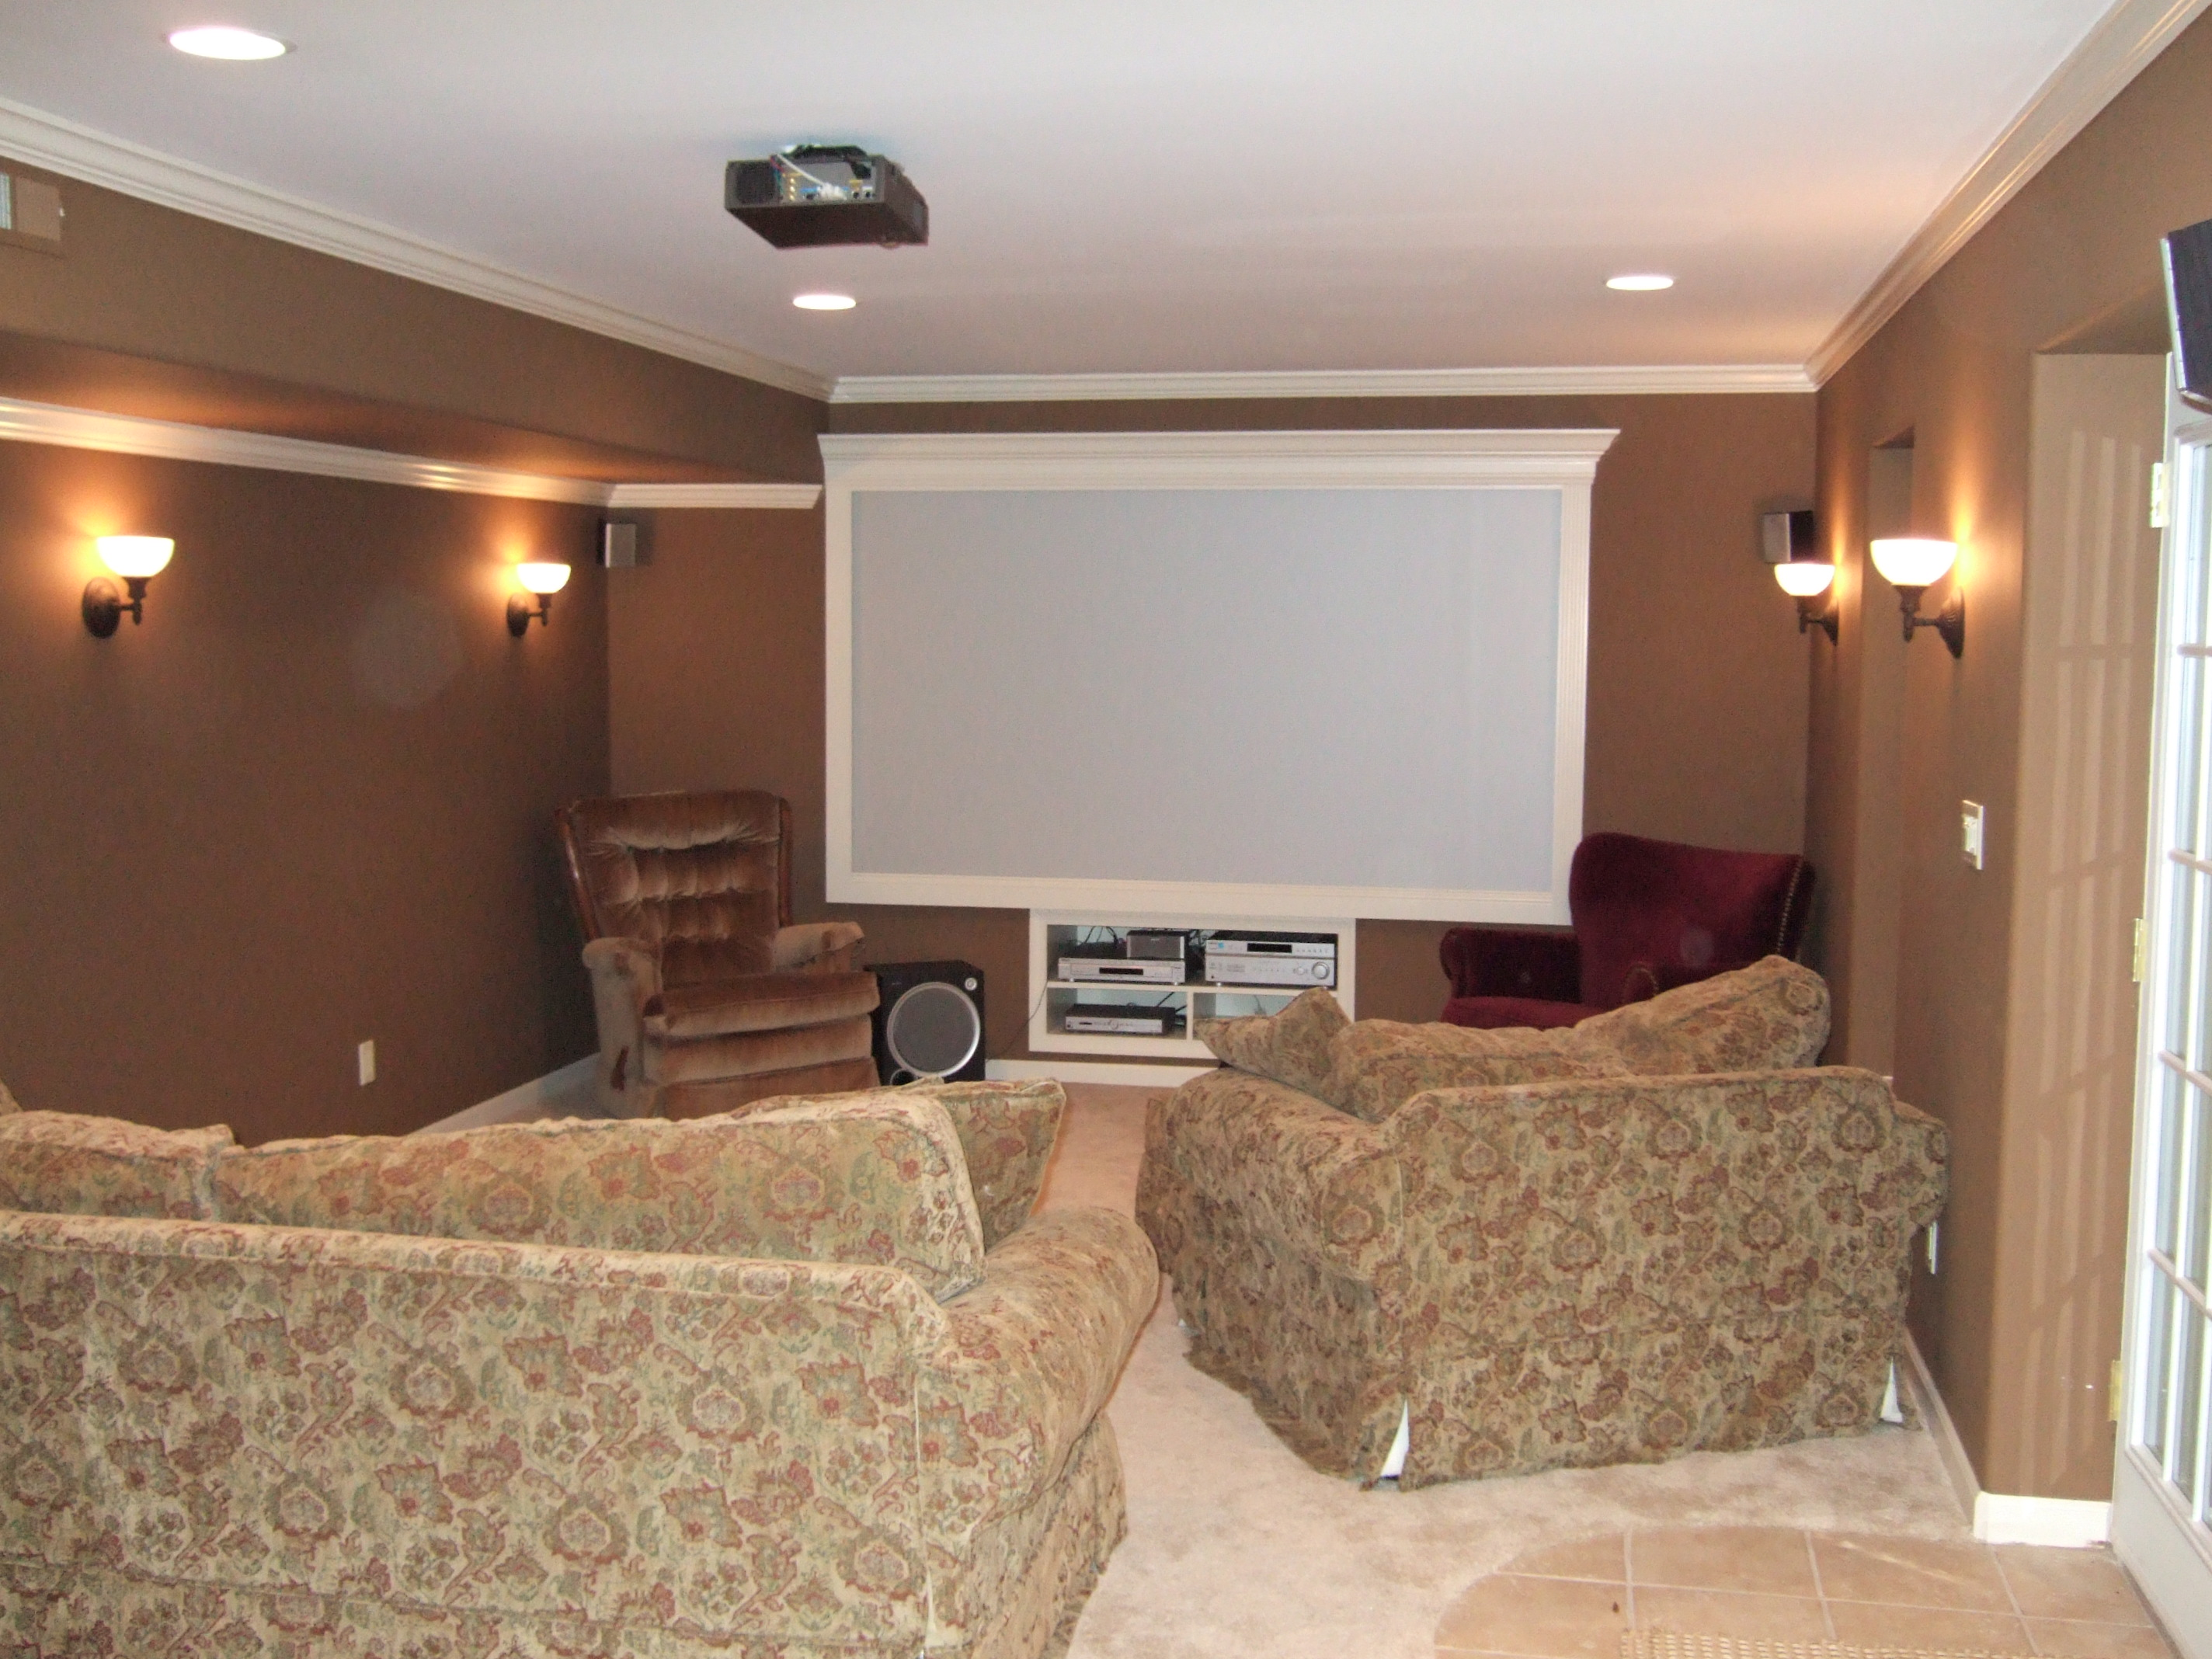 Basement Tv Ideas Finished Basement Remodeling Fairfax Manassas Pictures